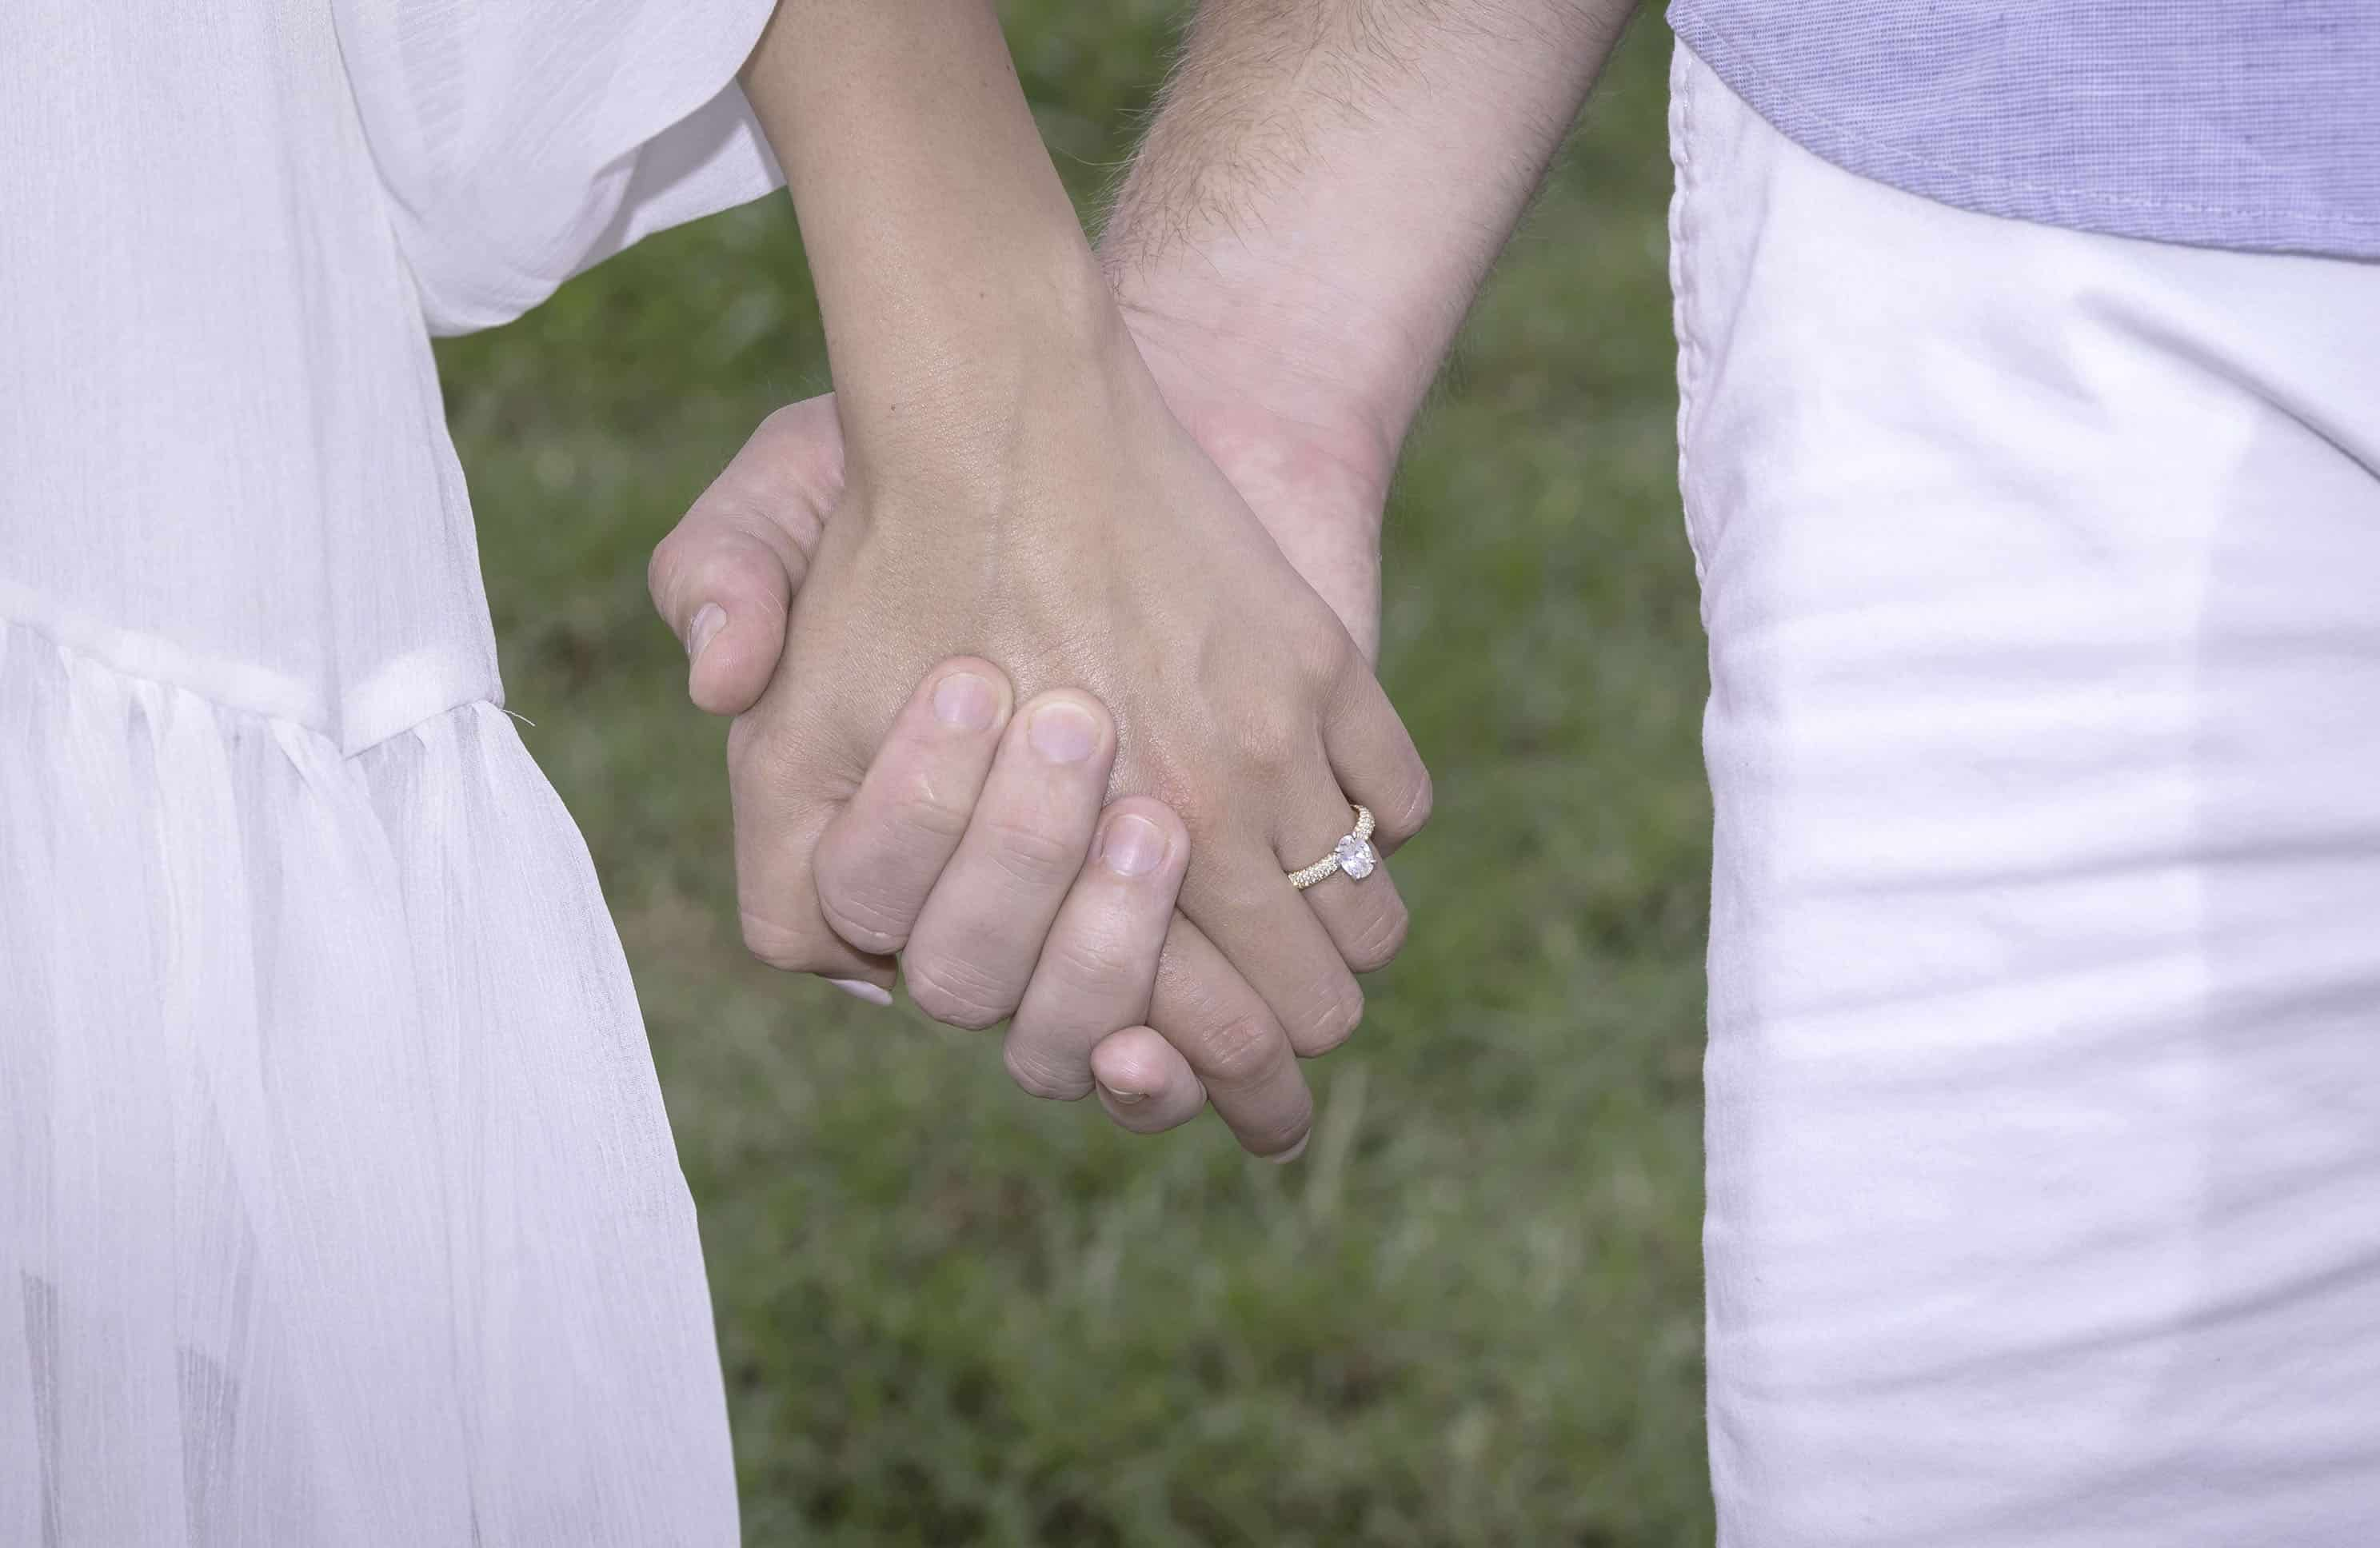 A couple showing off their wedding Rings